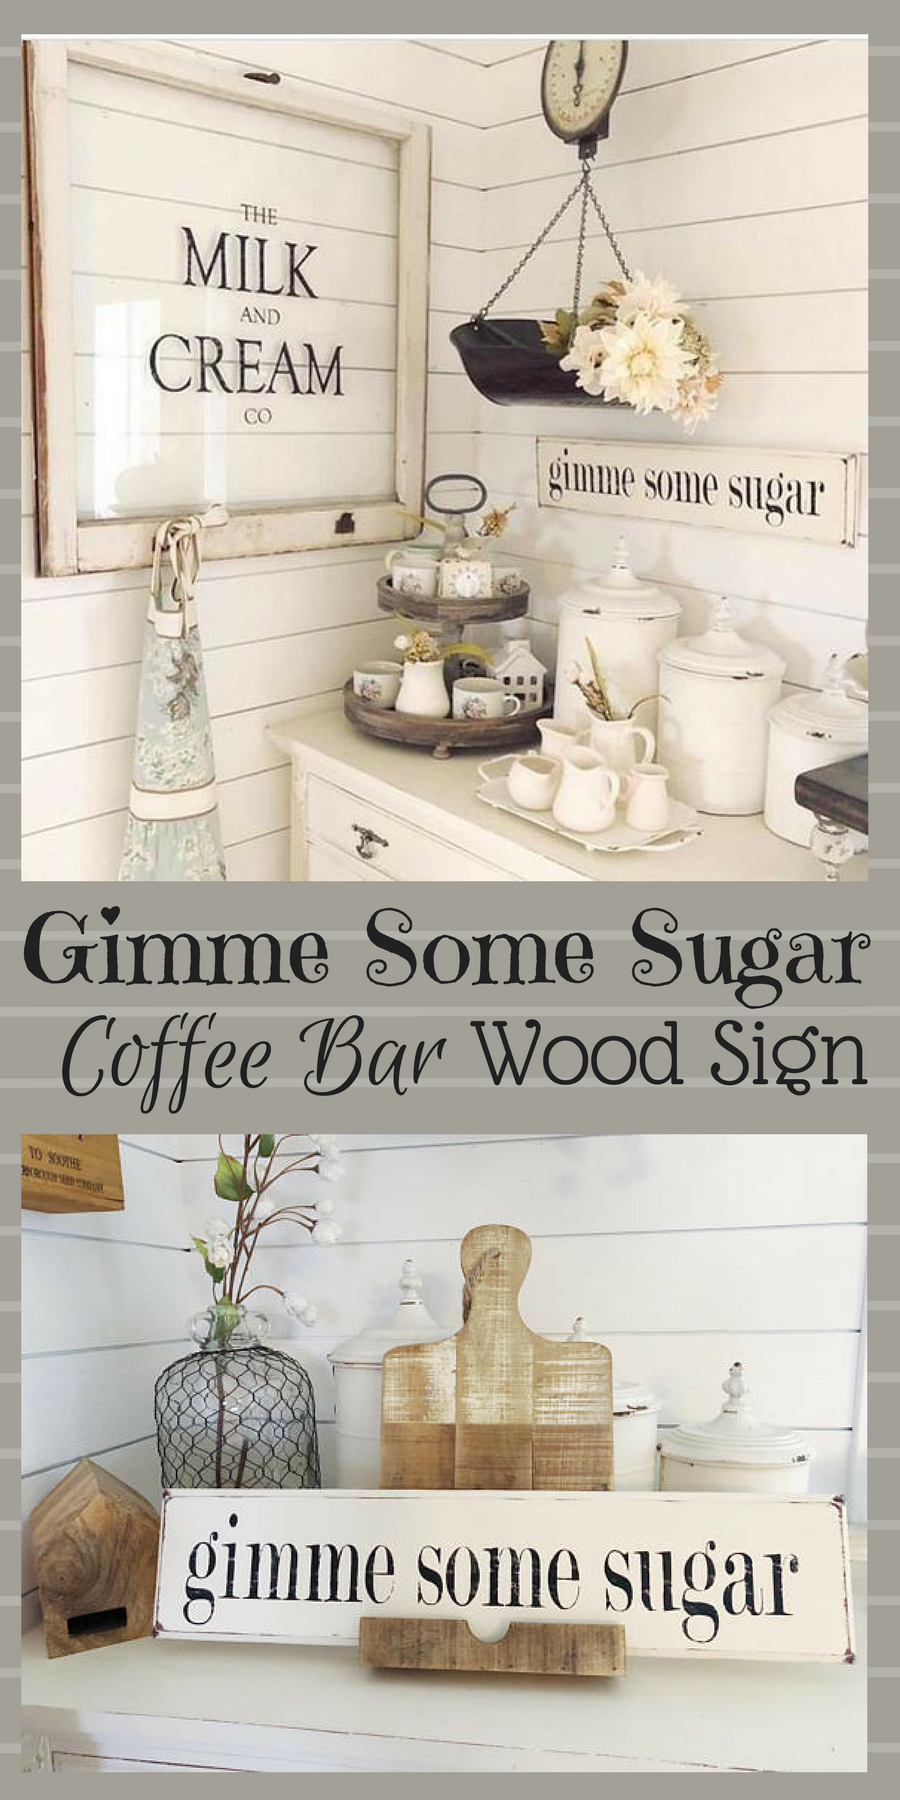 I must have this fabulous coffe bar set up! What a fun way